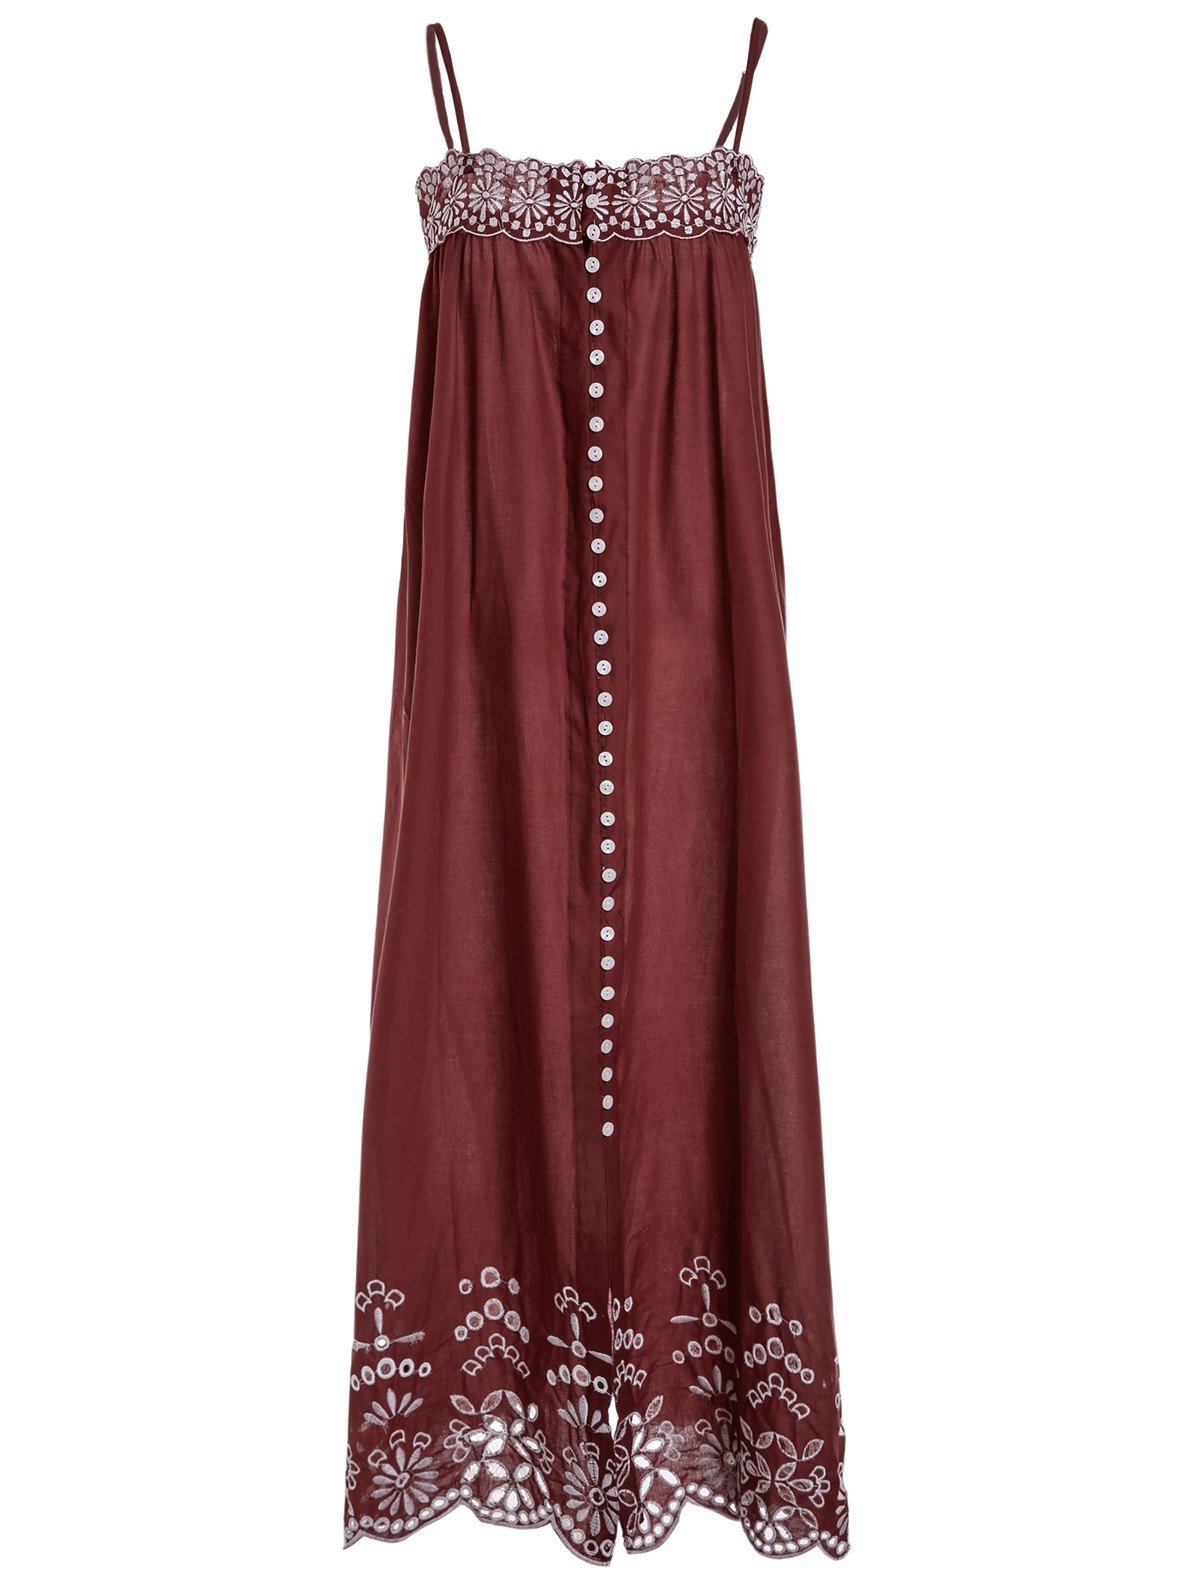 Ethnic Style Spaghetti Strap Sleeveless Embroidered Women's Dress - WINE RED L